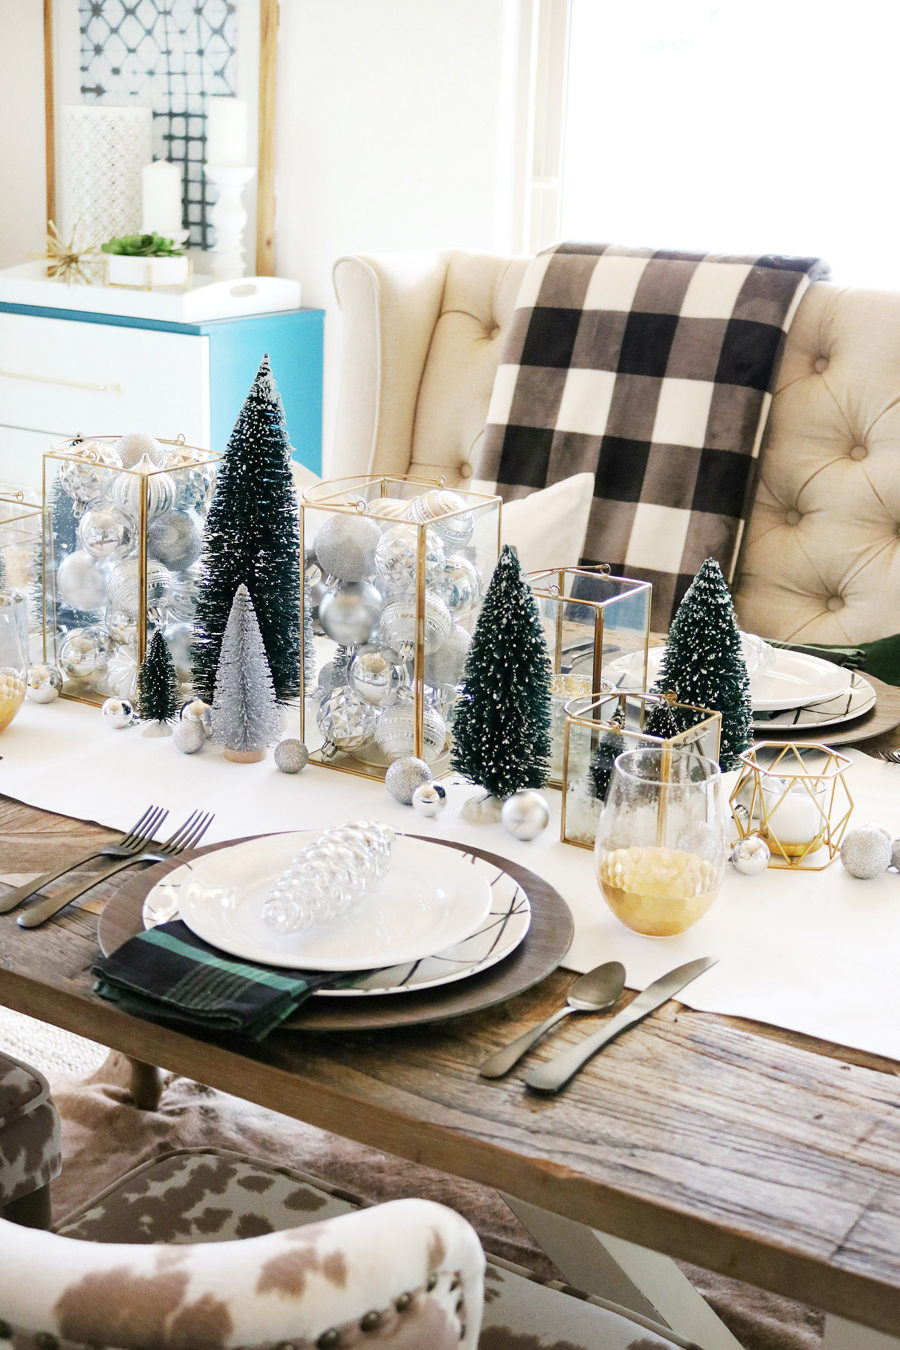 Pleasant Simple Modern Christmas Dining Table Ideas Home Interior And Landscaping Ologienasavecom